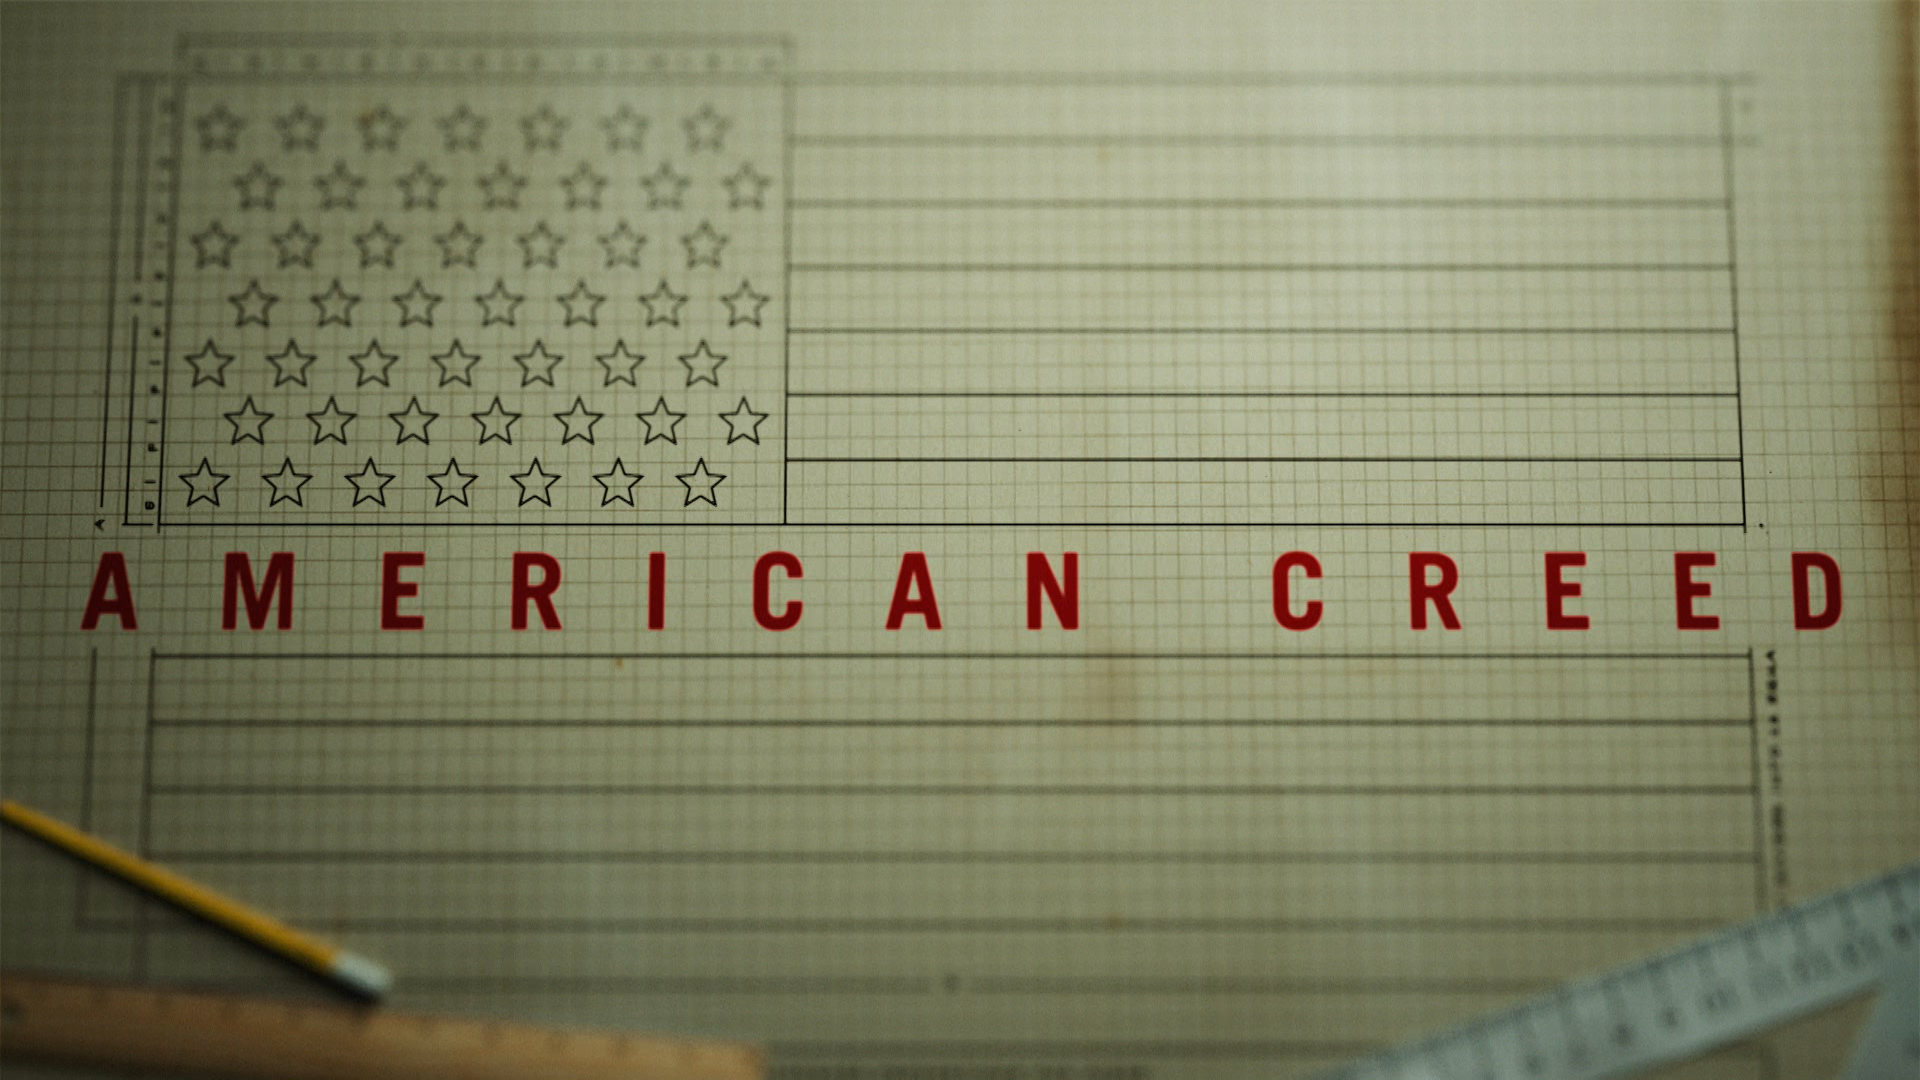 American Creed_promo_clean_30.mov.01_00_27_17.Still001.jpg